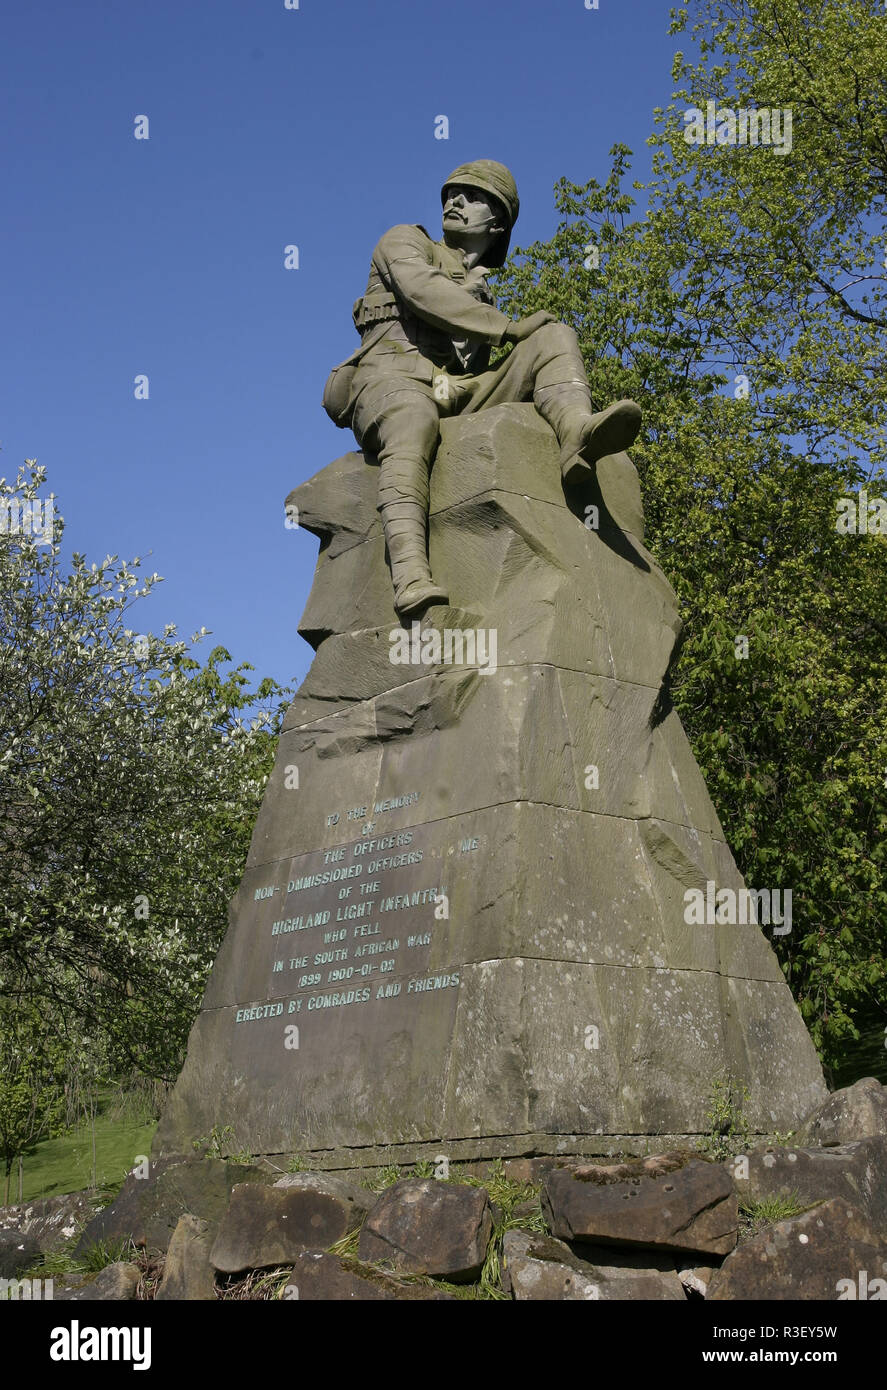 This grand war memorial is dedicated to the memory of all the non-commissioned officers of the Highland Light Infantry who fought, and died, in the South African War in 1899. The memorial is in Kelvingrove park in Glasgow, Scotland. - Stock Image